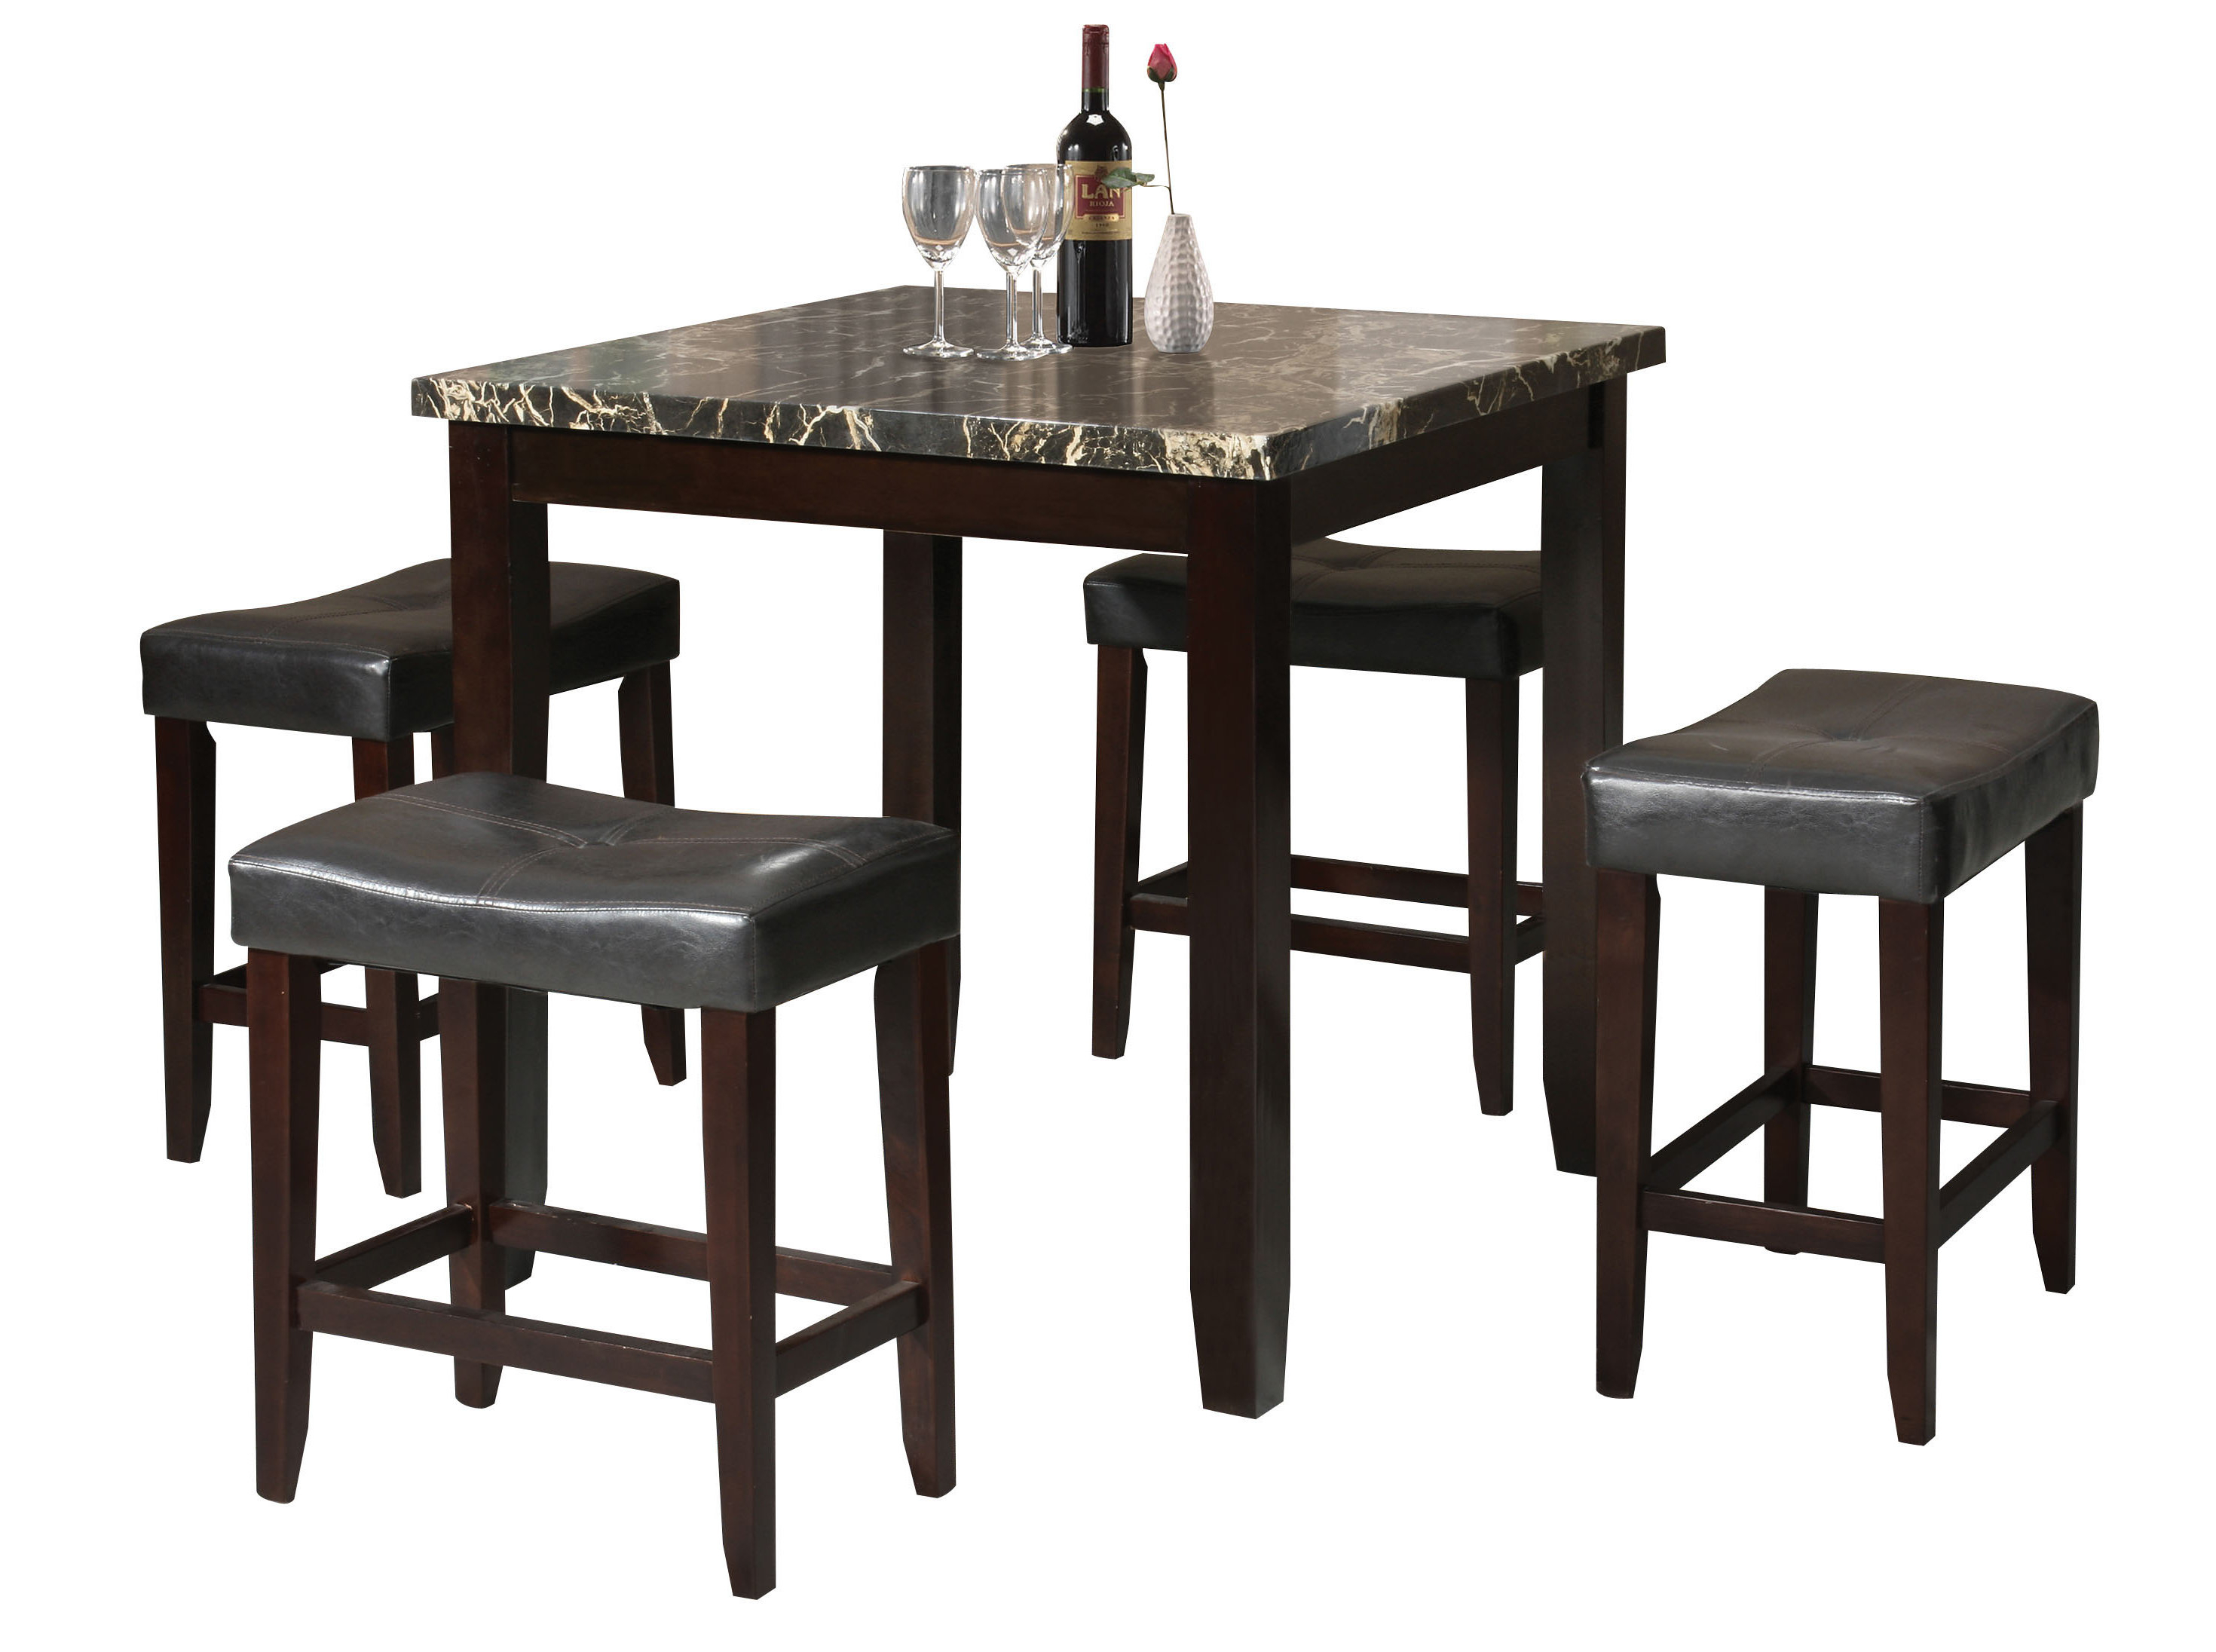 Dehaven 5 Piece Counter Height Dining Set Intended For Best And Newest Tenney 3 Piece Counter Height Dining Sets (View 11 of 20)